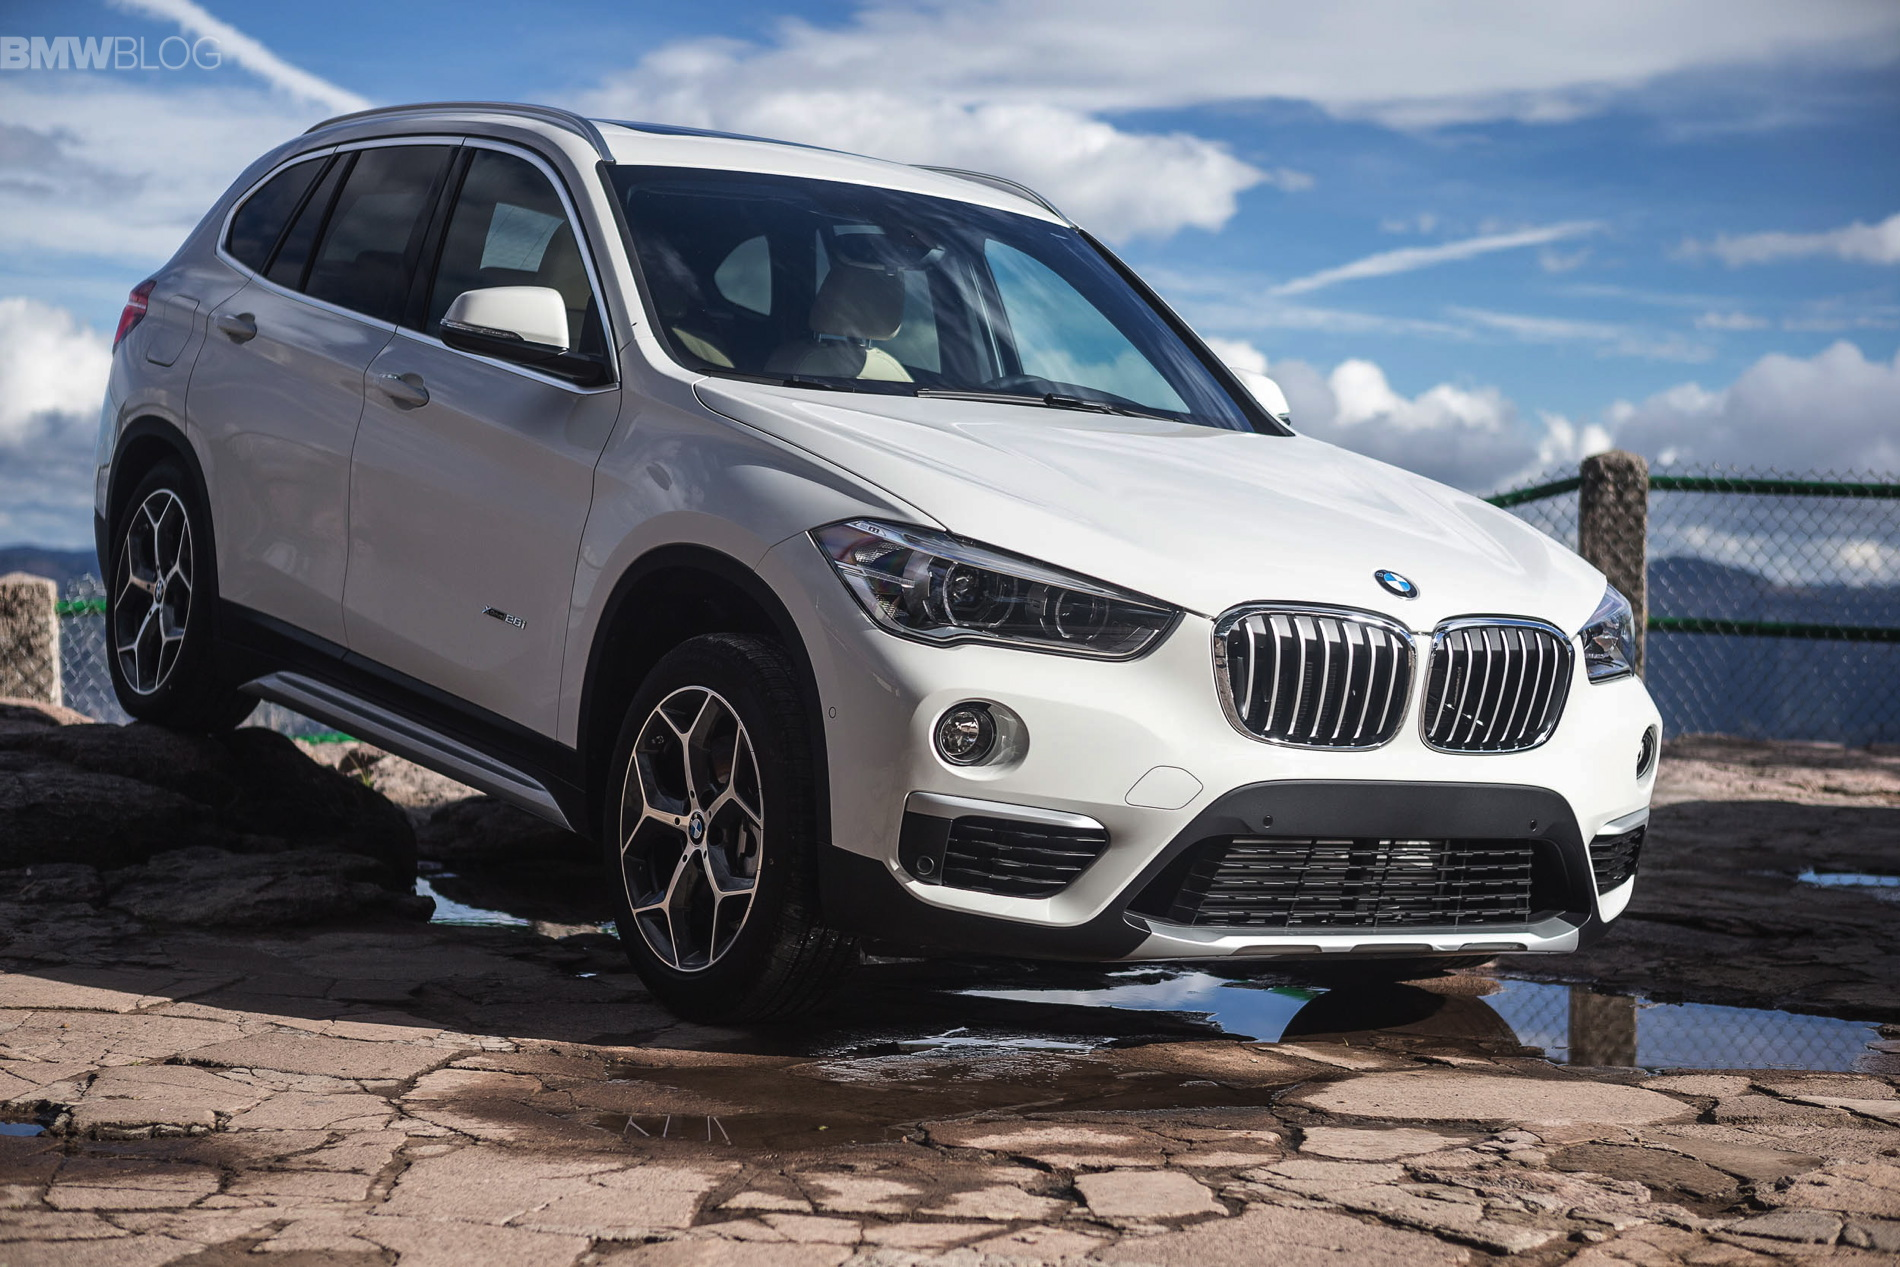 BMW X1 TV Ad Highlights The Spirit Of Freedom